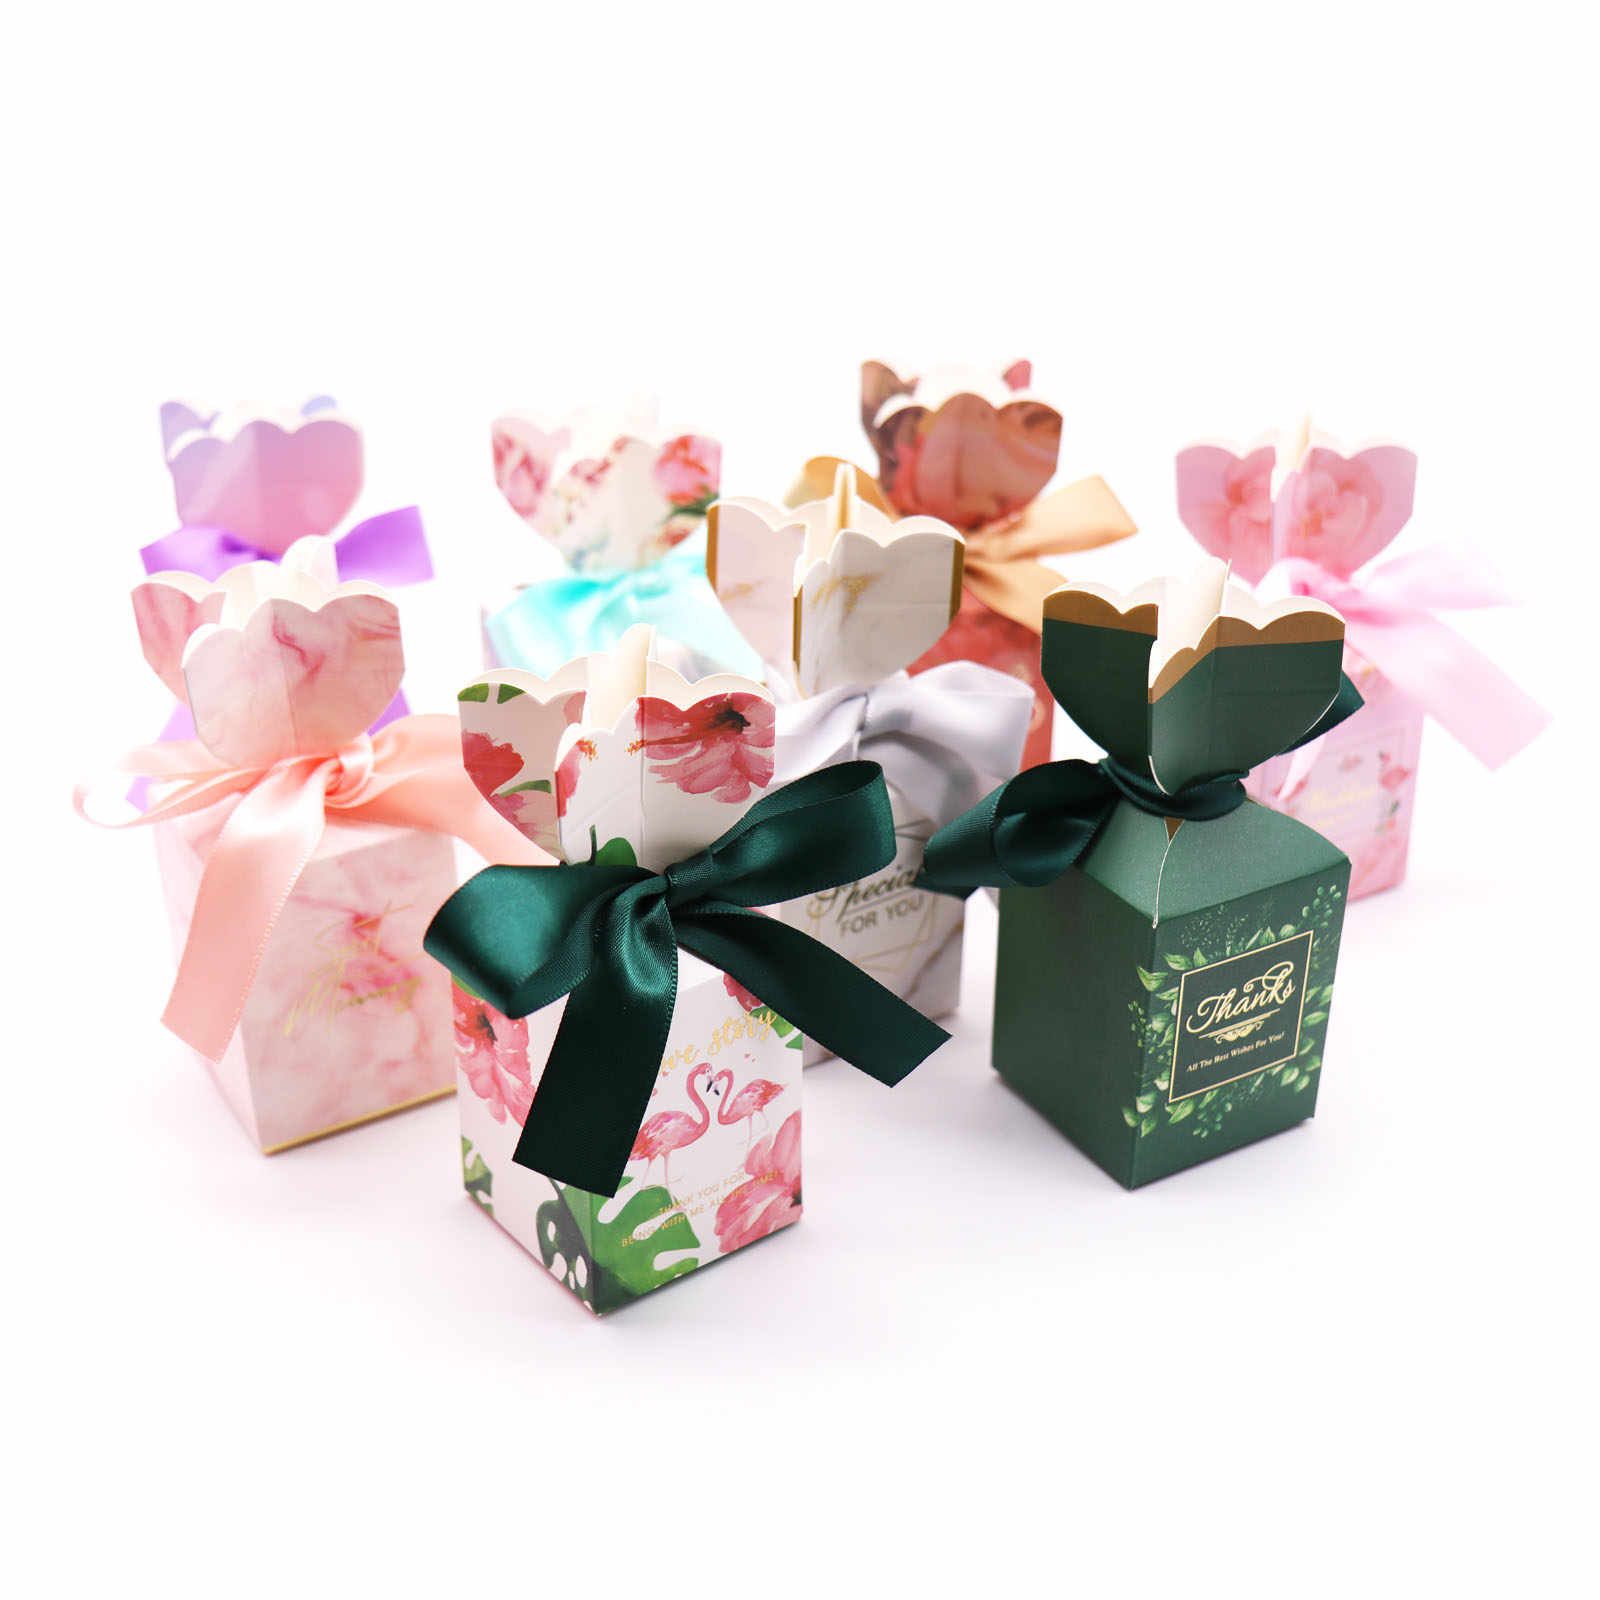 10//20//50Pcs Chocolate Cake Candy Boxes Gift Bag Wedding Favors Party Decoration